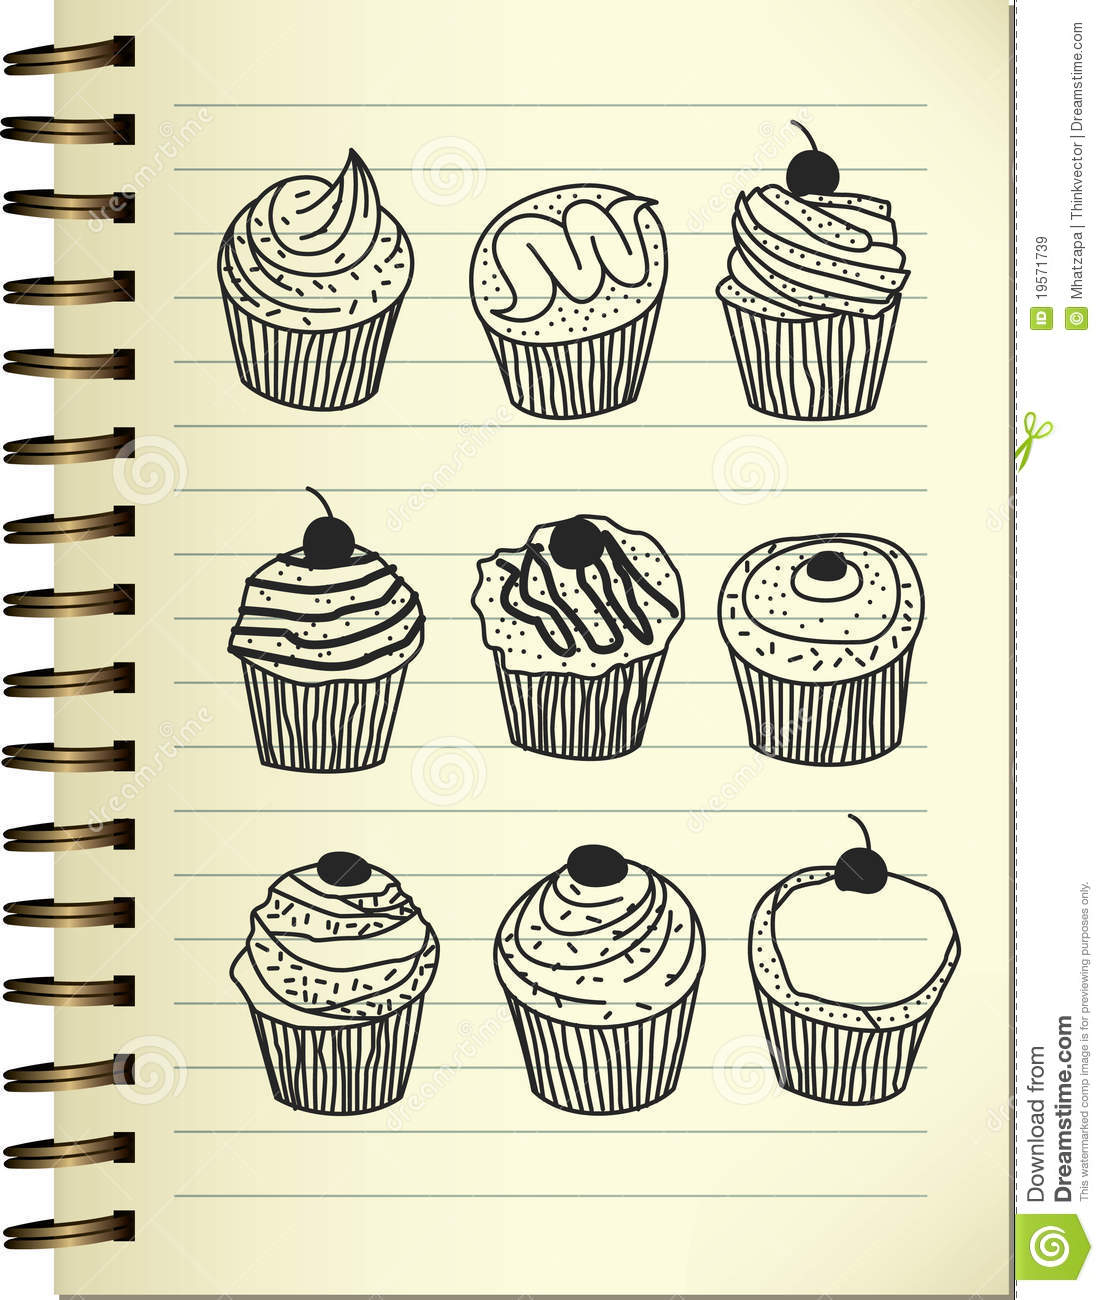 Cupcake Doodle Royalty Free Stock Images Image 19571739